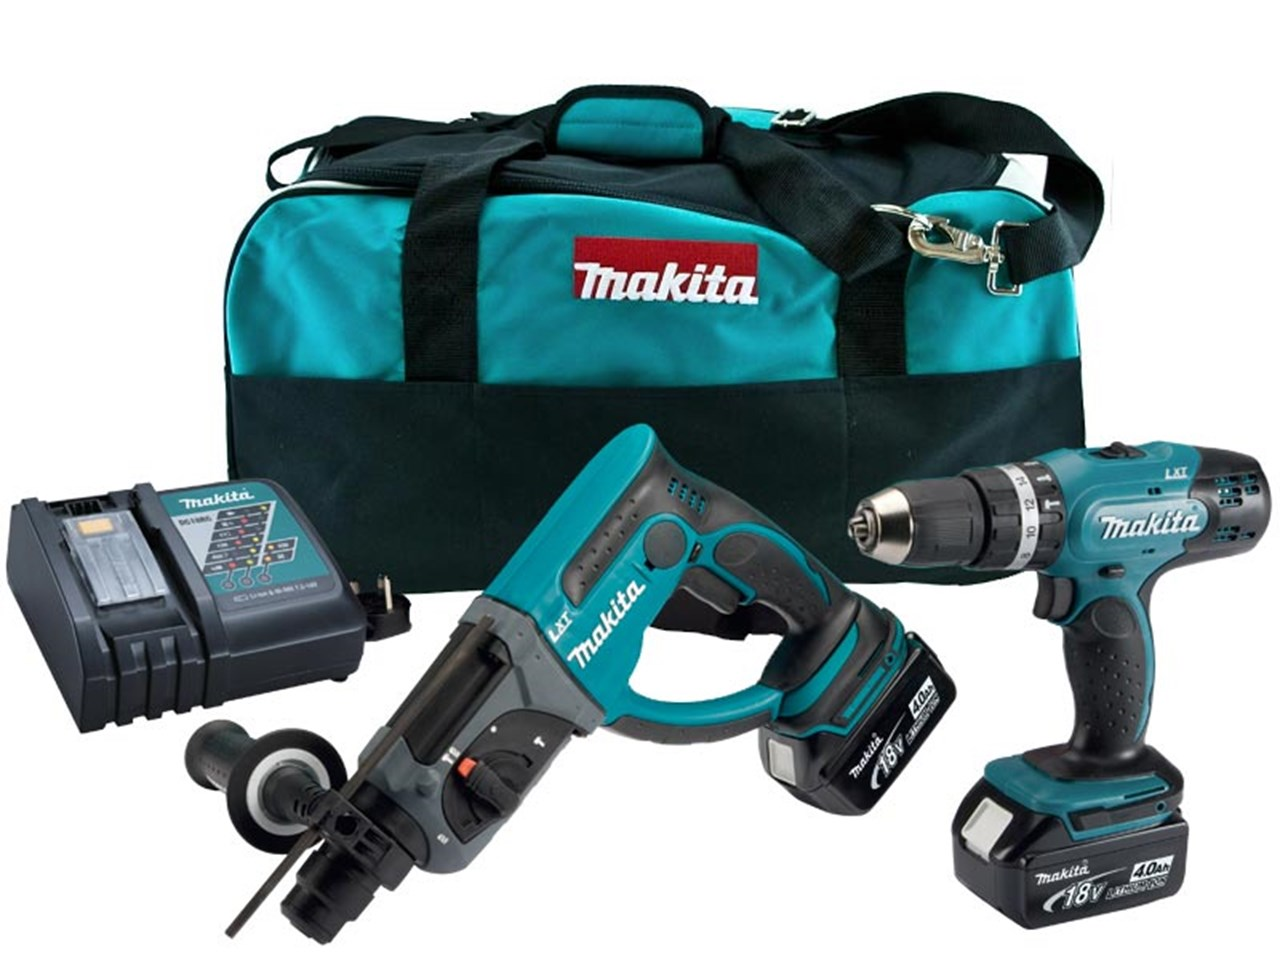 Makita DLX2025M 18v 2 x 4 0Ah LXT Combi SDS Hammer Drill Twin Kit